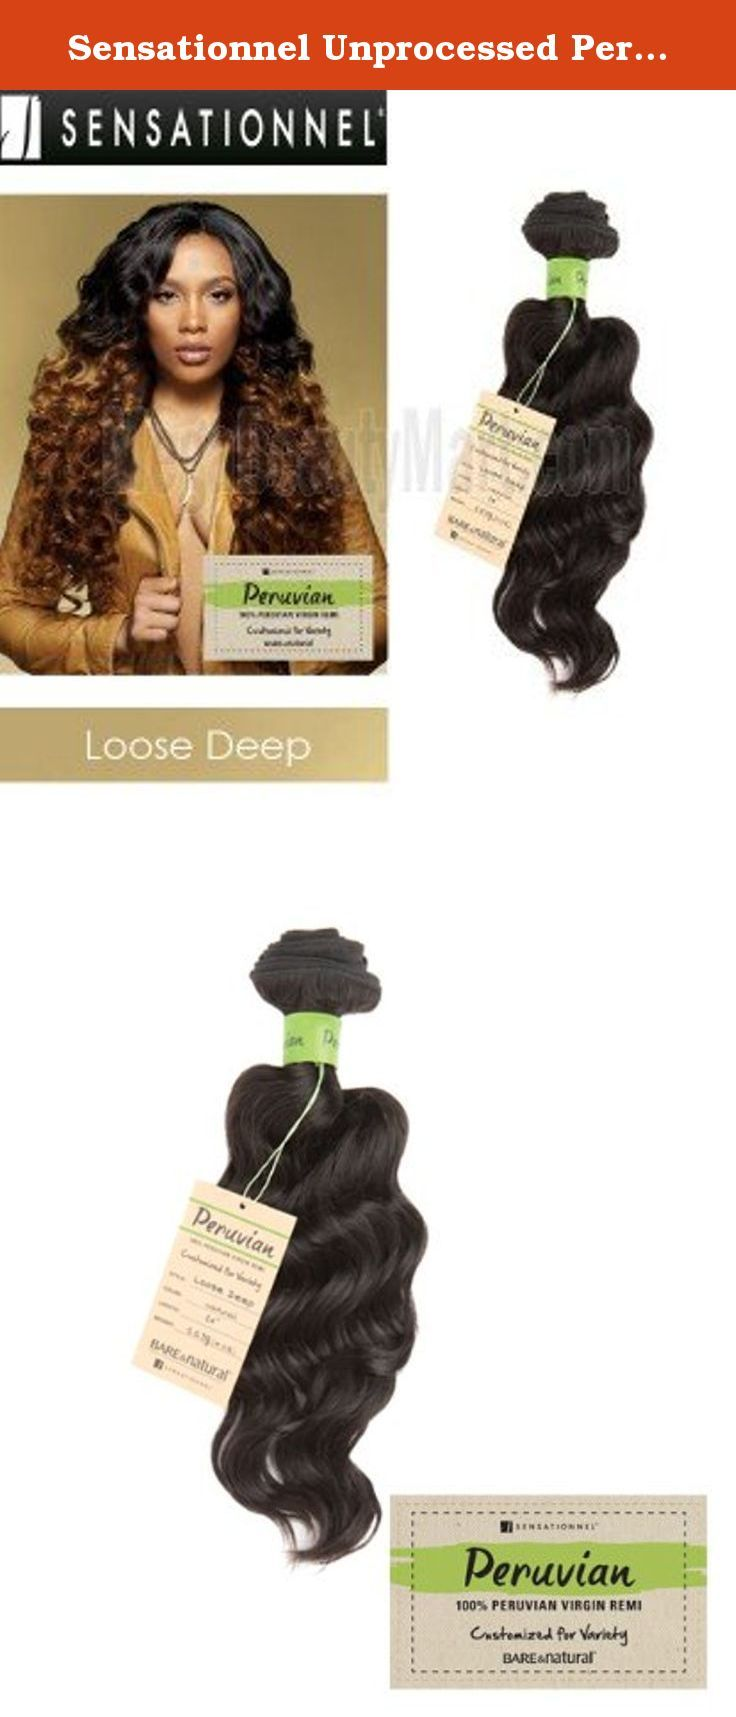 """Sensationnel Unprocessed Peruvian Virgin Remy Human Hair Weave Bare & Natural Loose Deep [18""""] (NATURAL). Sensationnel Unprocessed Peruvian Virgin Remy Human Hair Weave Bare & Natural Loose Deep •100% Peruvian Virgin Remy •Customized for Variety •5 A Quality •Excellent Performance for: Bleach, Multiple Dye, Perm, Wet&Wavy, Cur Restoration •When Washing:◦First, detangle the hair, afterwards wash the hair with lukewarm water. ◦We recommend using amild, sulfate-free detagling shampoo and a..."""